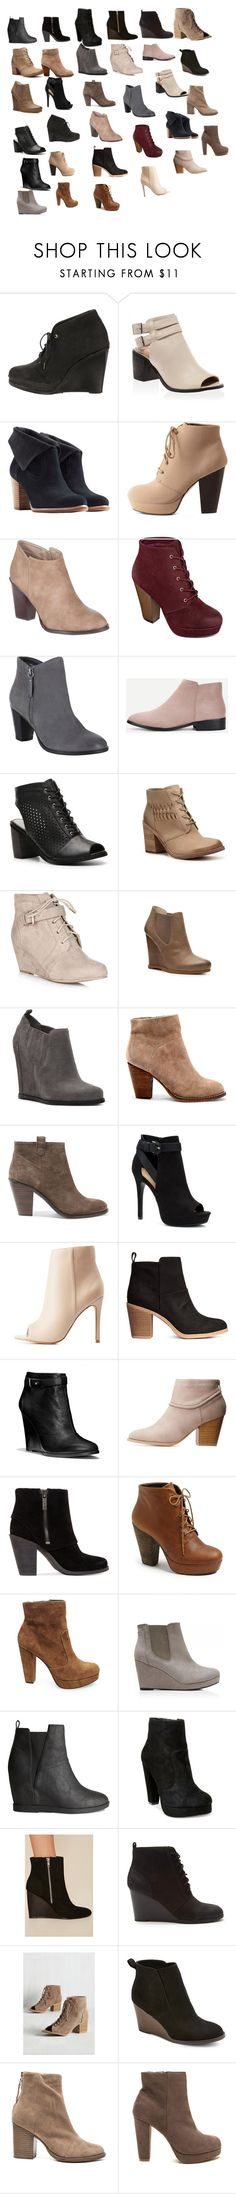 """""""Short boots"""" by samtiritilli666lol ❤ liked on Polyvore featuring rag & bone, UGG Australia, Charlotte Russe, Billini, MIA, Chinese Laundry, Modern Vintage, Audrey Brooke, Sole Society and Ash"""